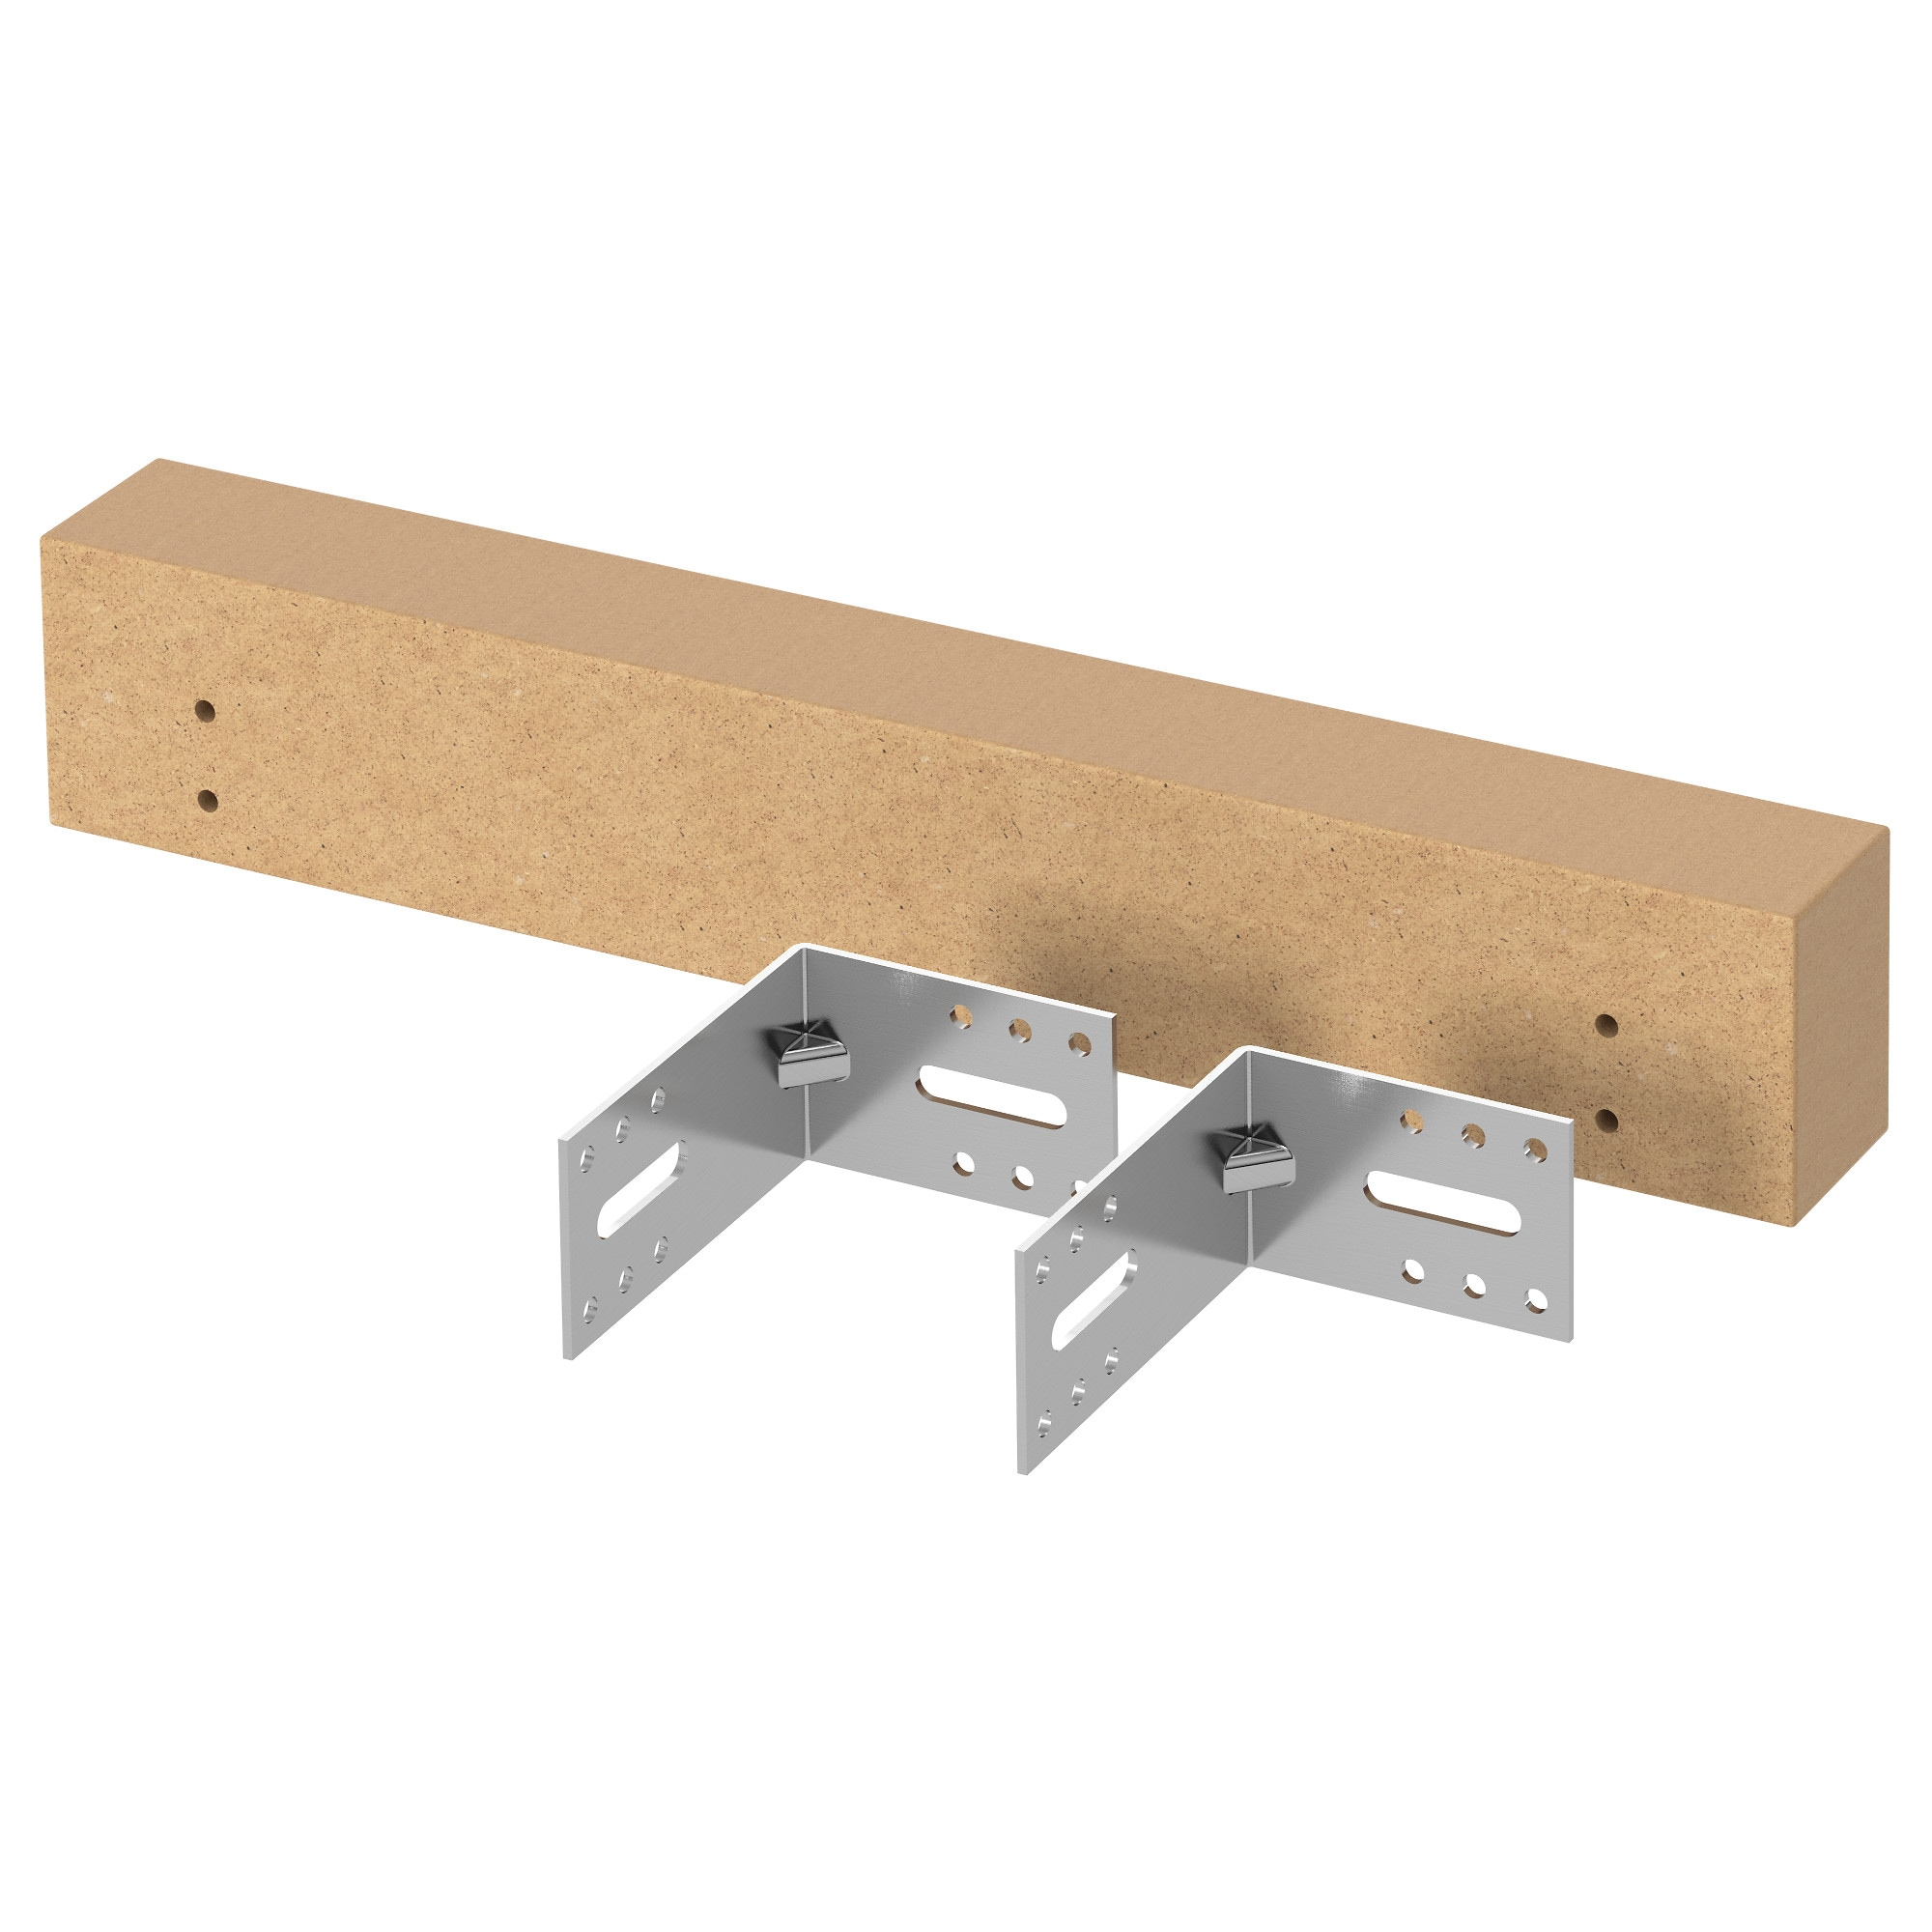 Ikea Kitchen Island sektion support bracket for kitchen island - ikea